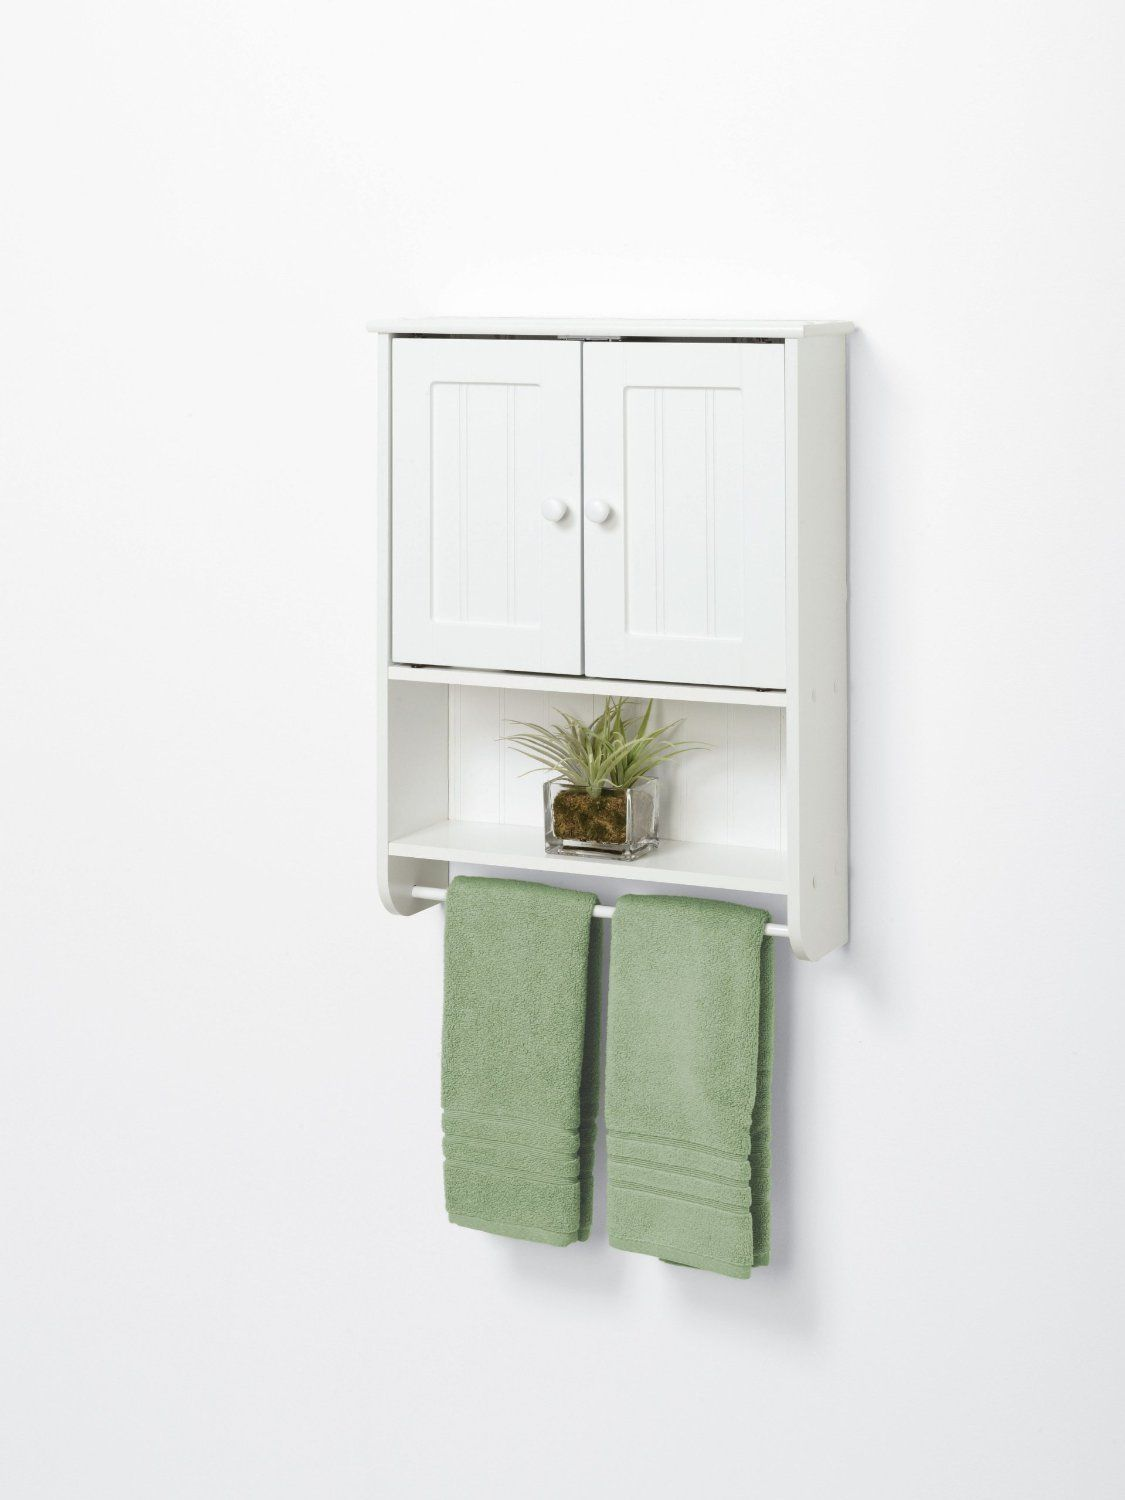 White Medicine Cabinet Shelf Wall Mount Hanging Towel Bar Bathroom